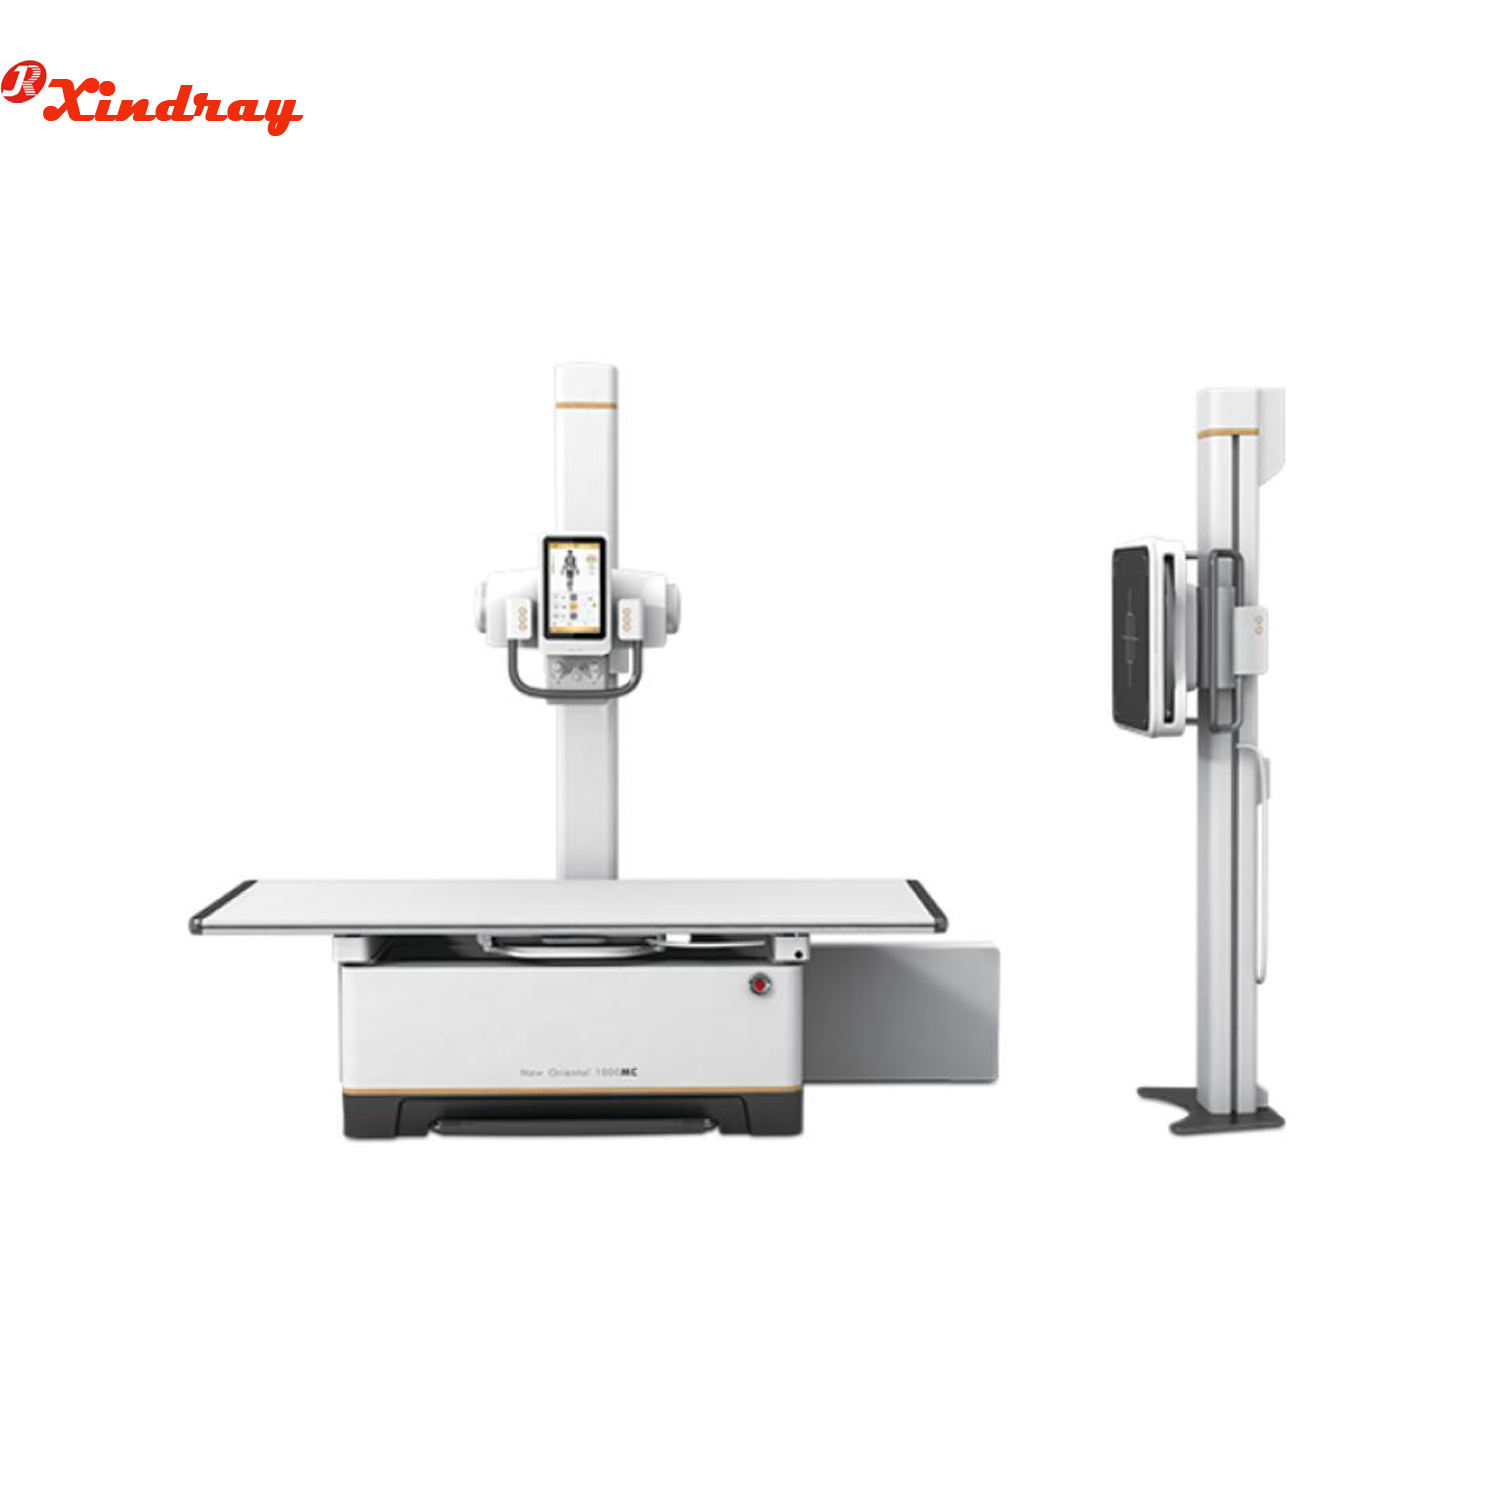 Factory Price Hospital Medical Equipment High Frequency 500mA 50kw Digital X-ray Machine